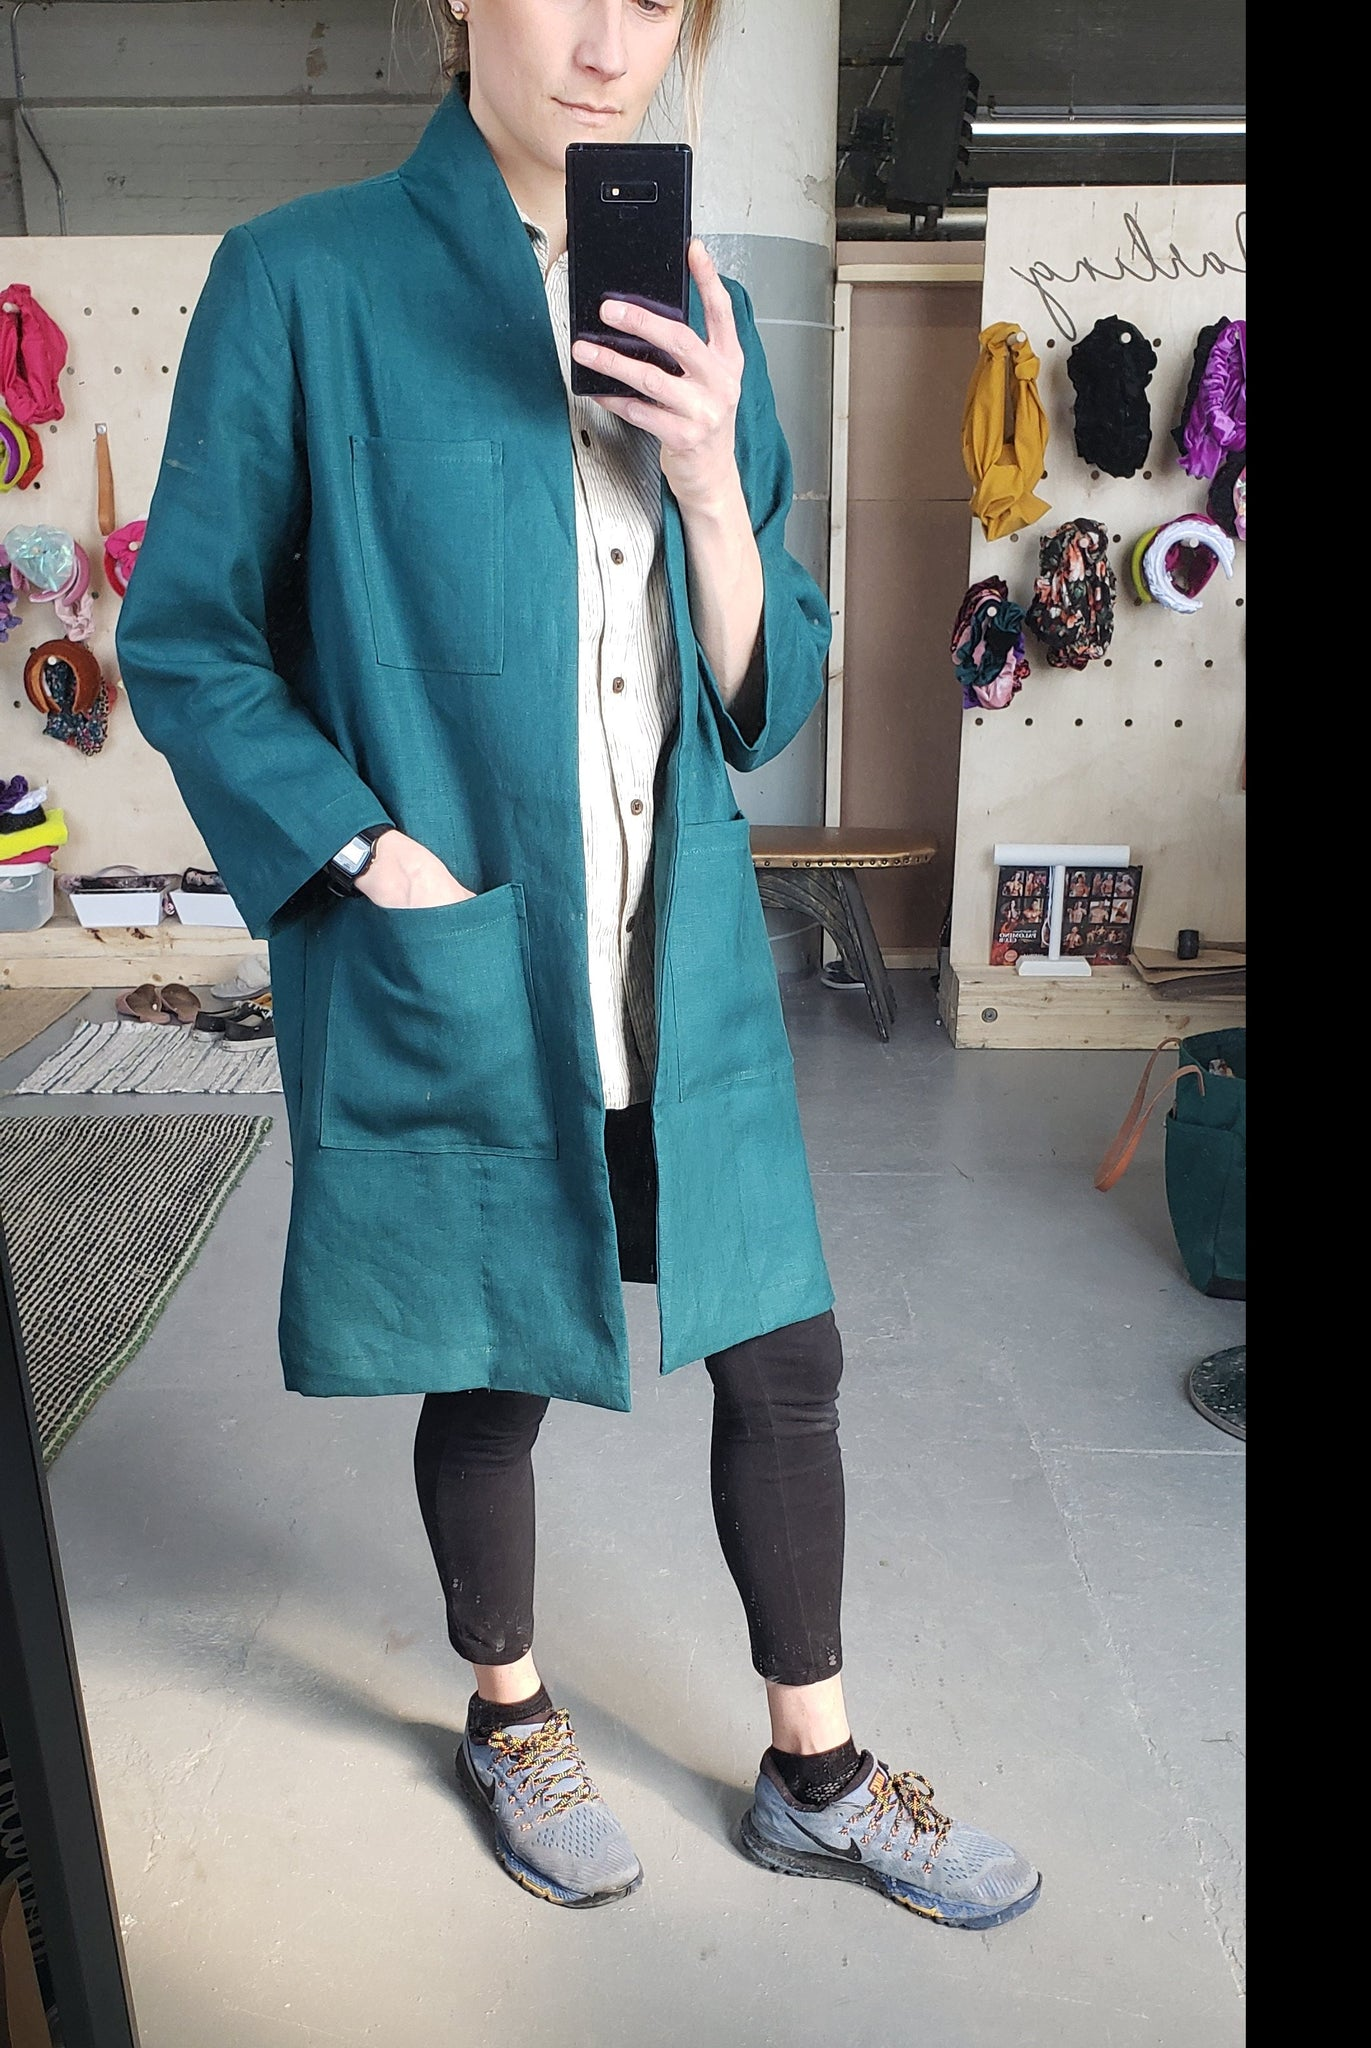 woman wearing a teal linen lab coat with leggings and sneakers taking a selfie